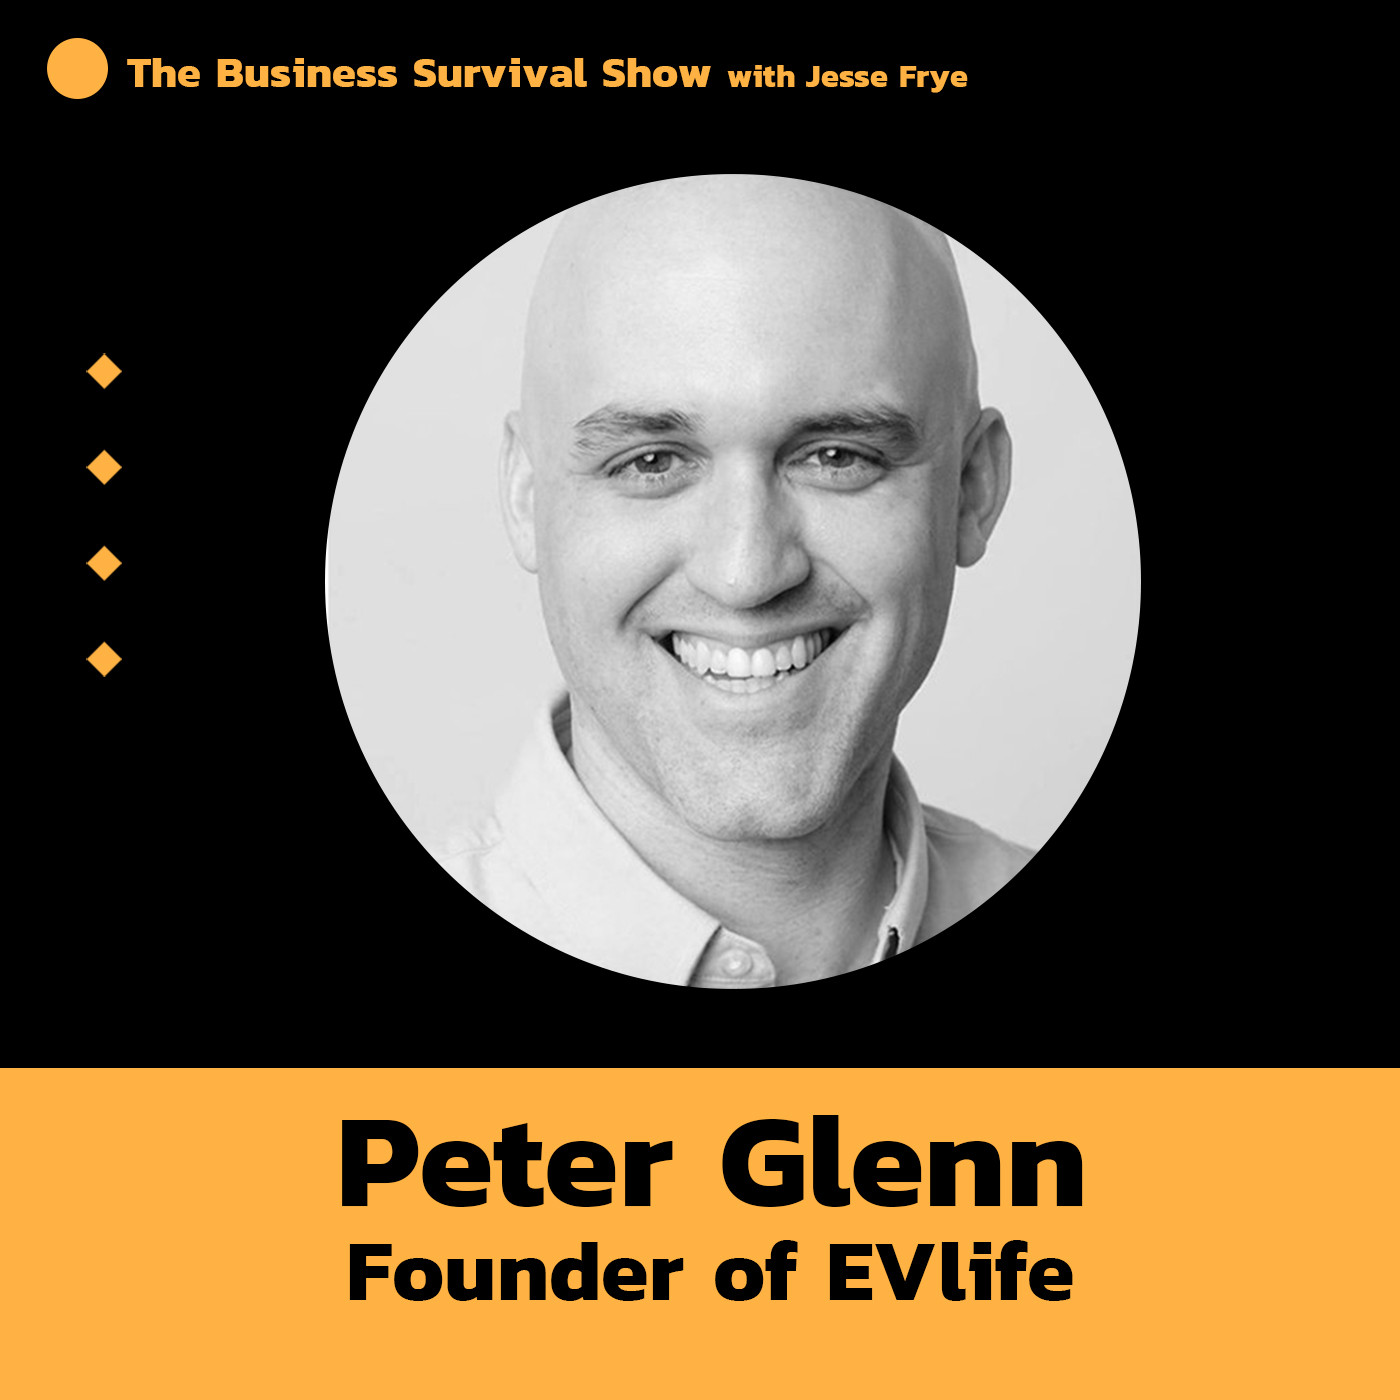 Peter Glenn, Co-Founder & CEO of EVlife works to make financing an electric car more accessible